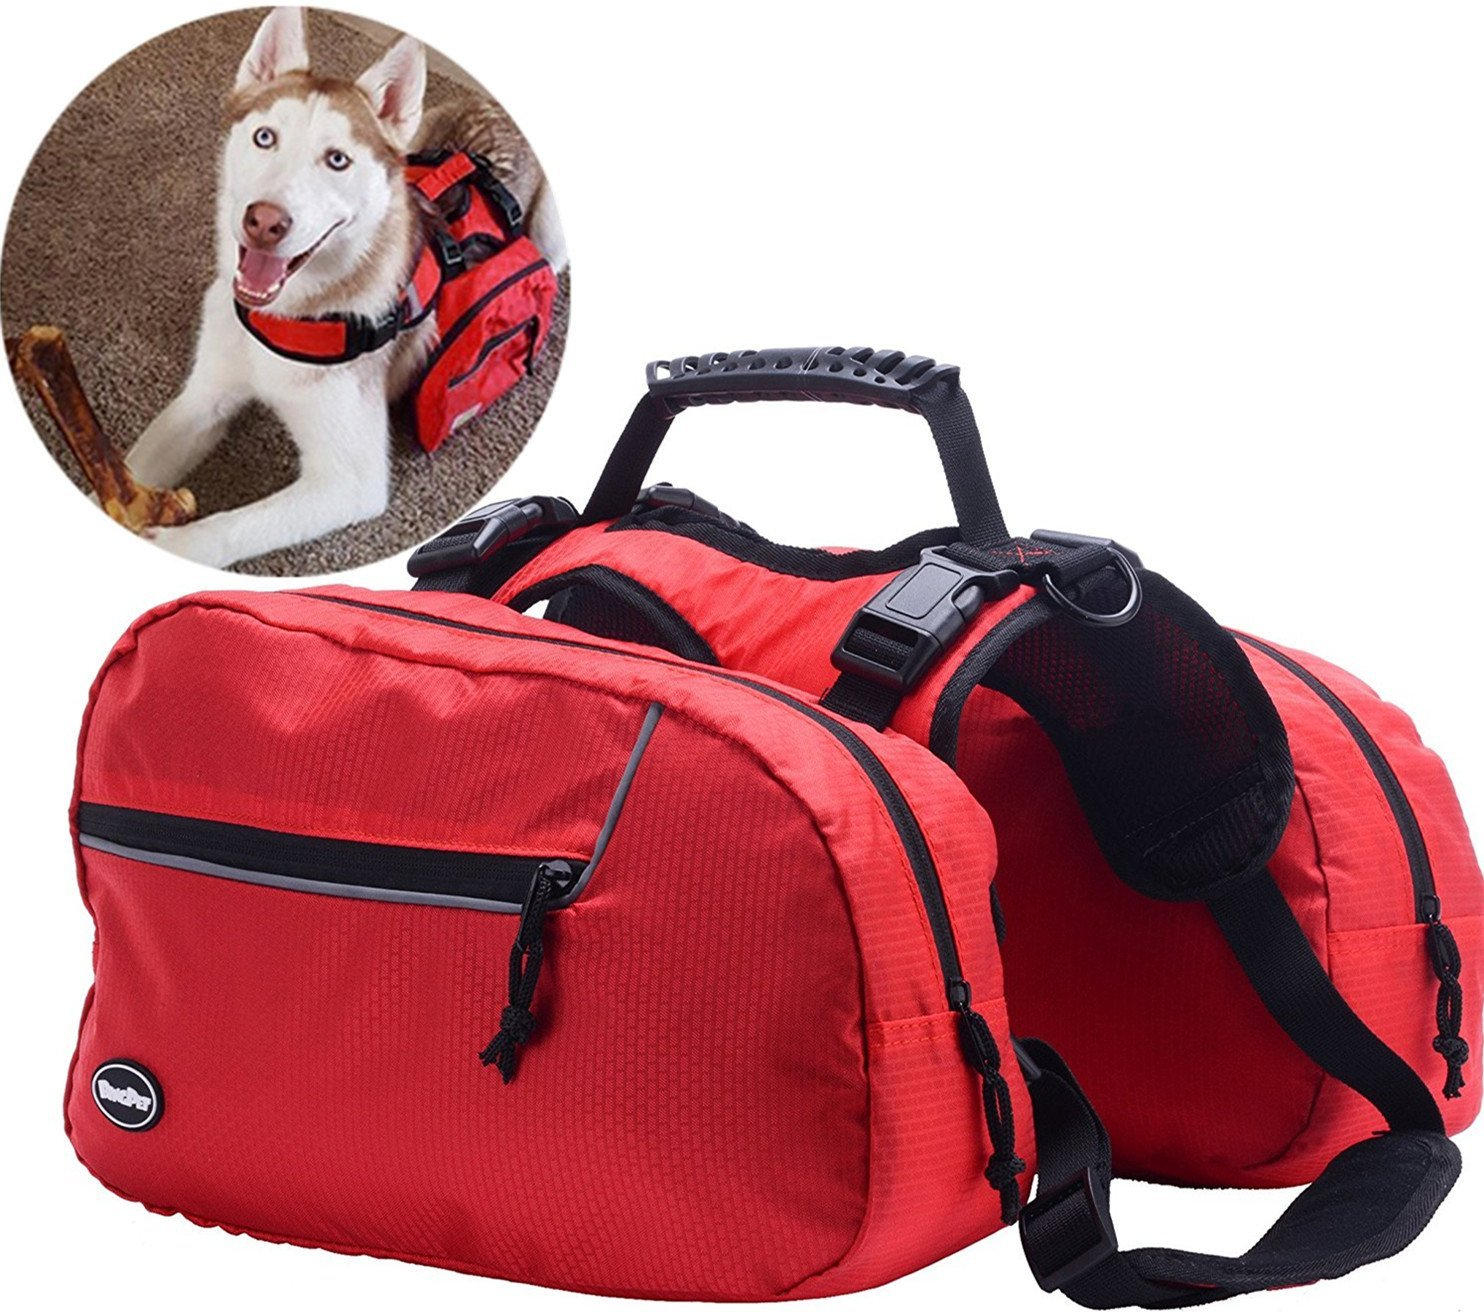 BINGPET Adjustable Dog Backpack for Hiking Camping Travel Pack Outdoor Accessory Saddlebag, Red S (Certified Refurbished)